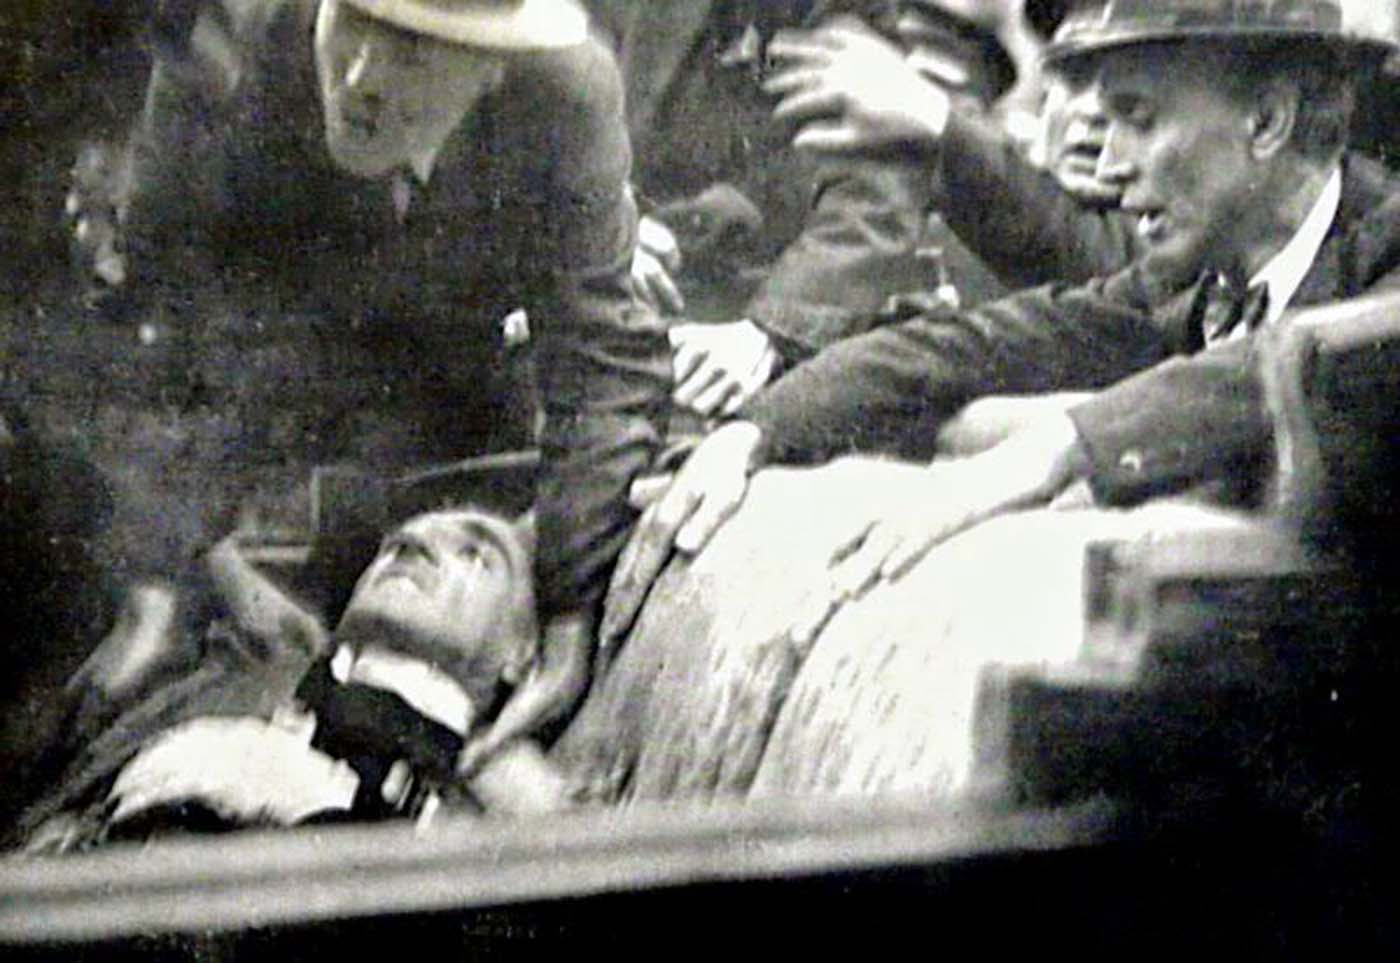 Alexander died in the car, slumped backwards in the seat, with his eyes open. Barthou was badly wounded in the arm but died later due to inadequate medical treatment.